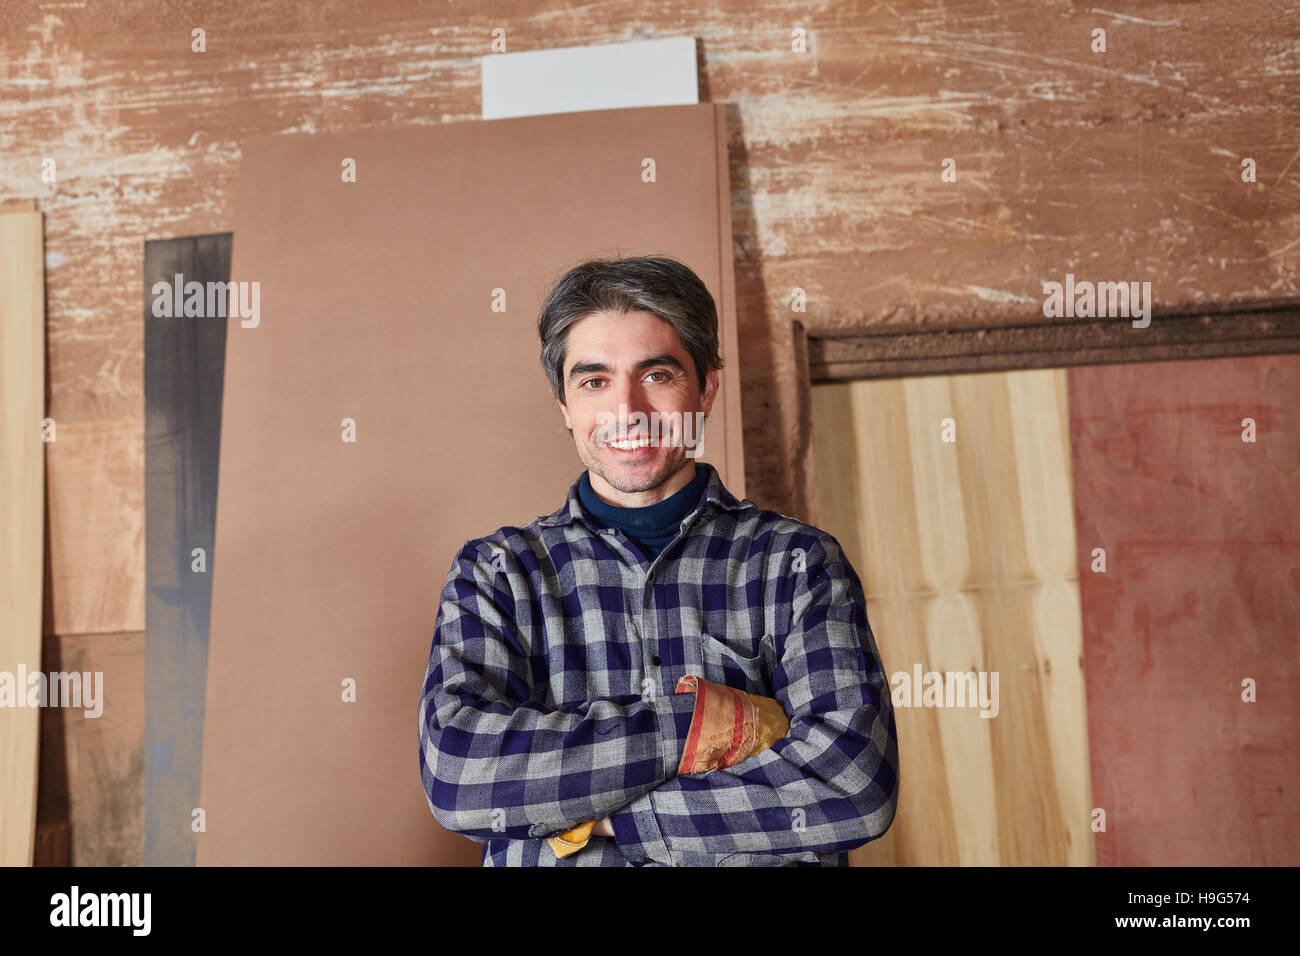 Man as woodworker or craftsman looking content - Stock Image